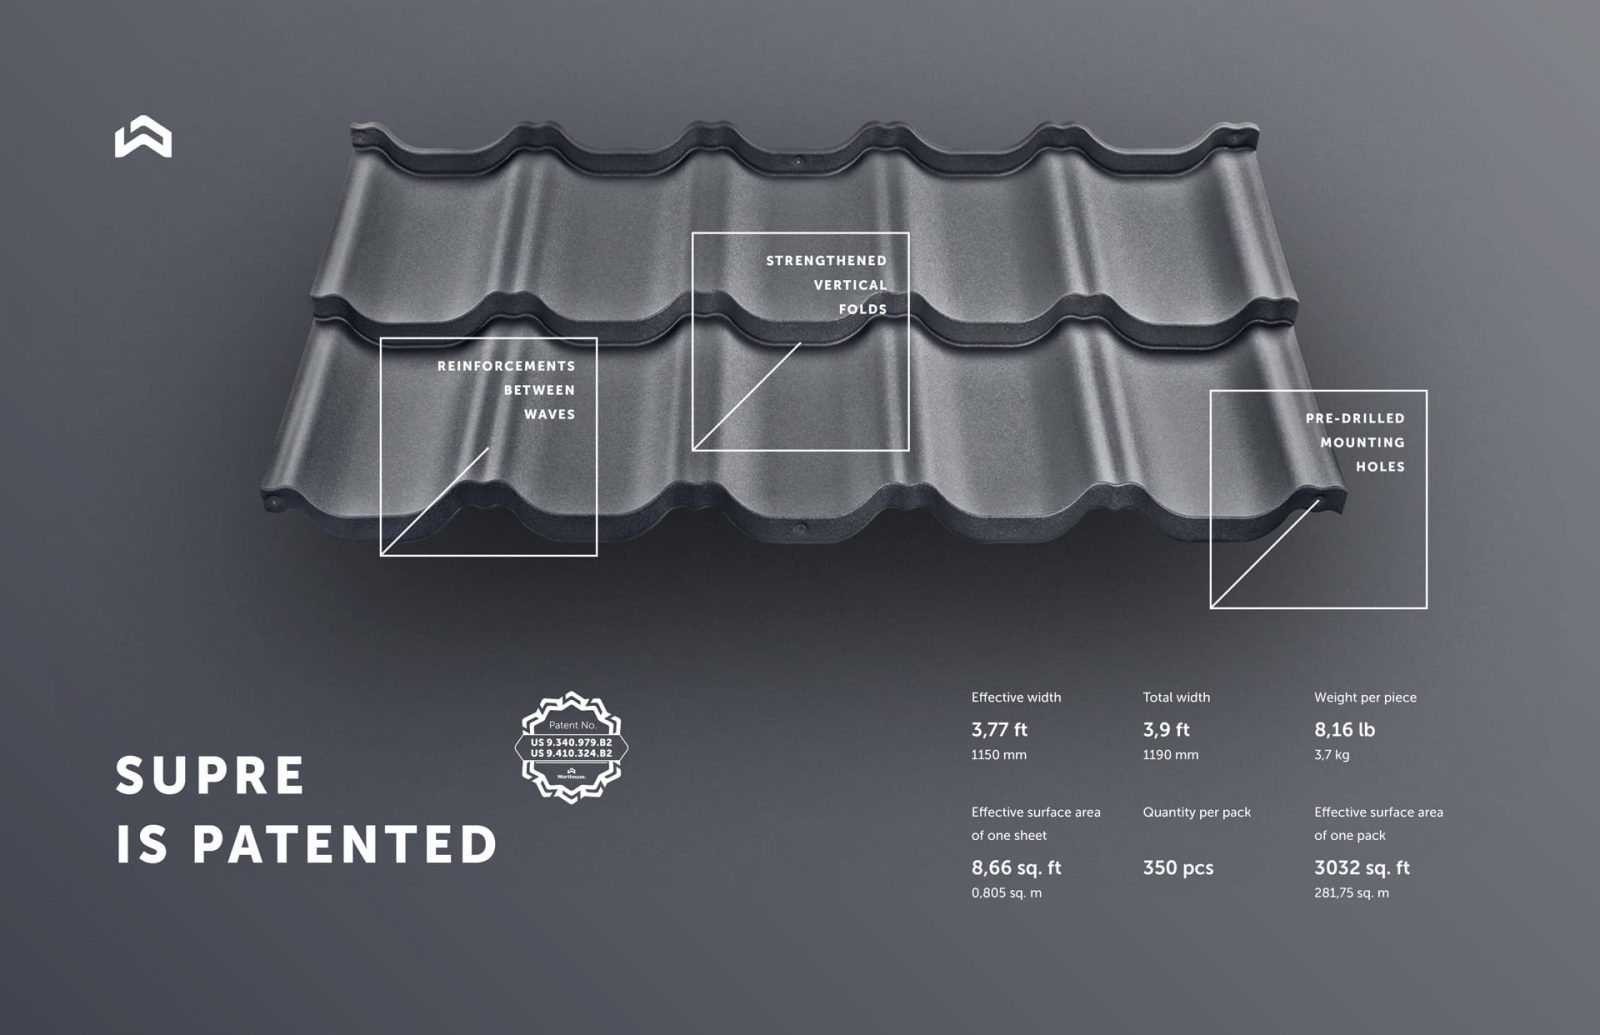 supre metal roofing features